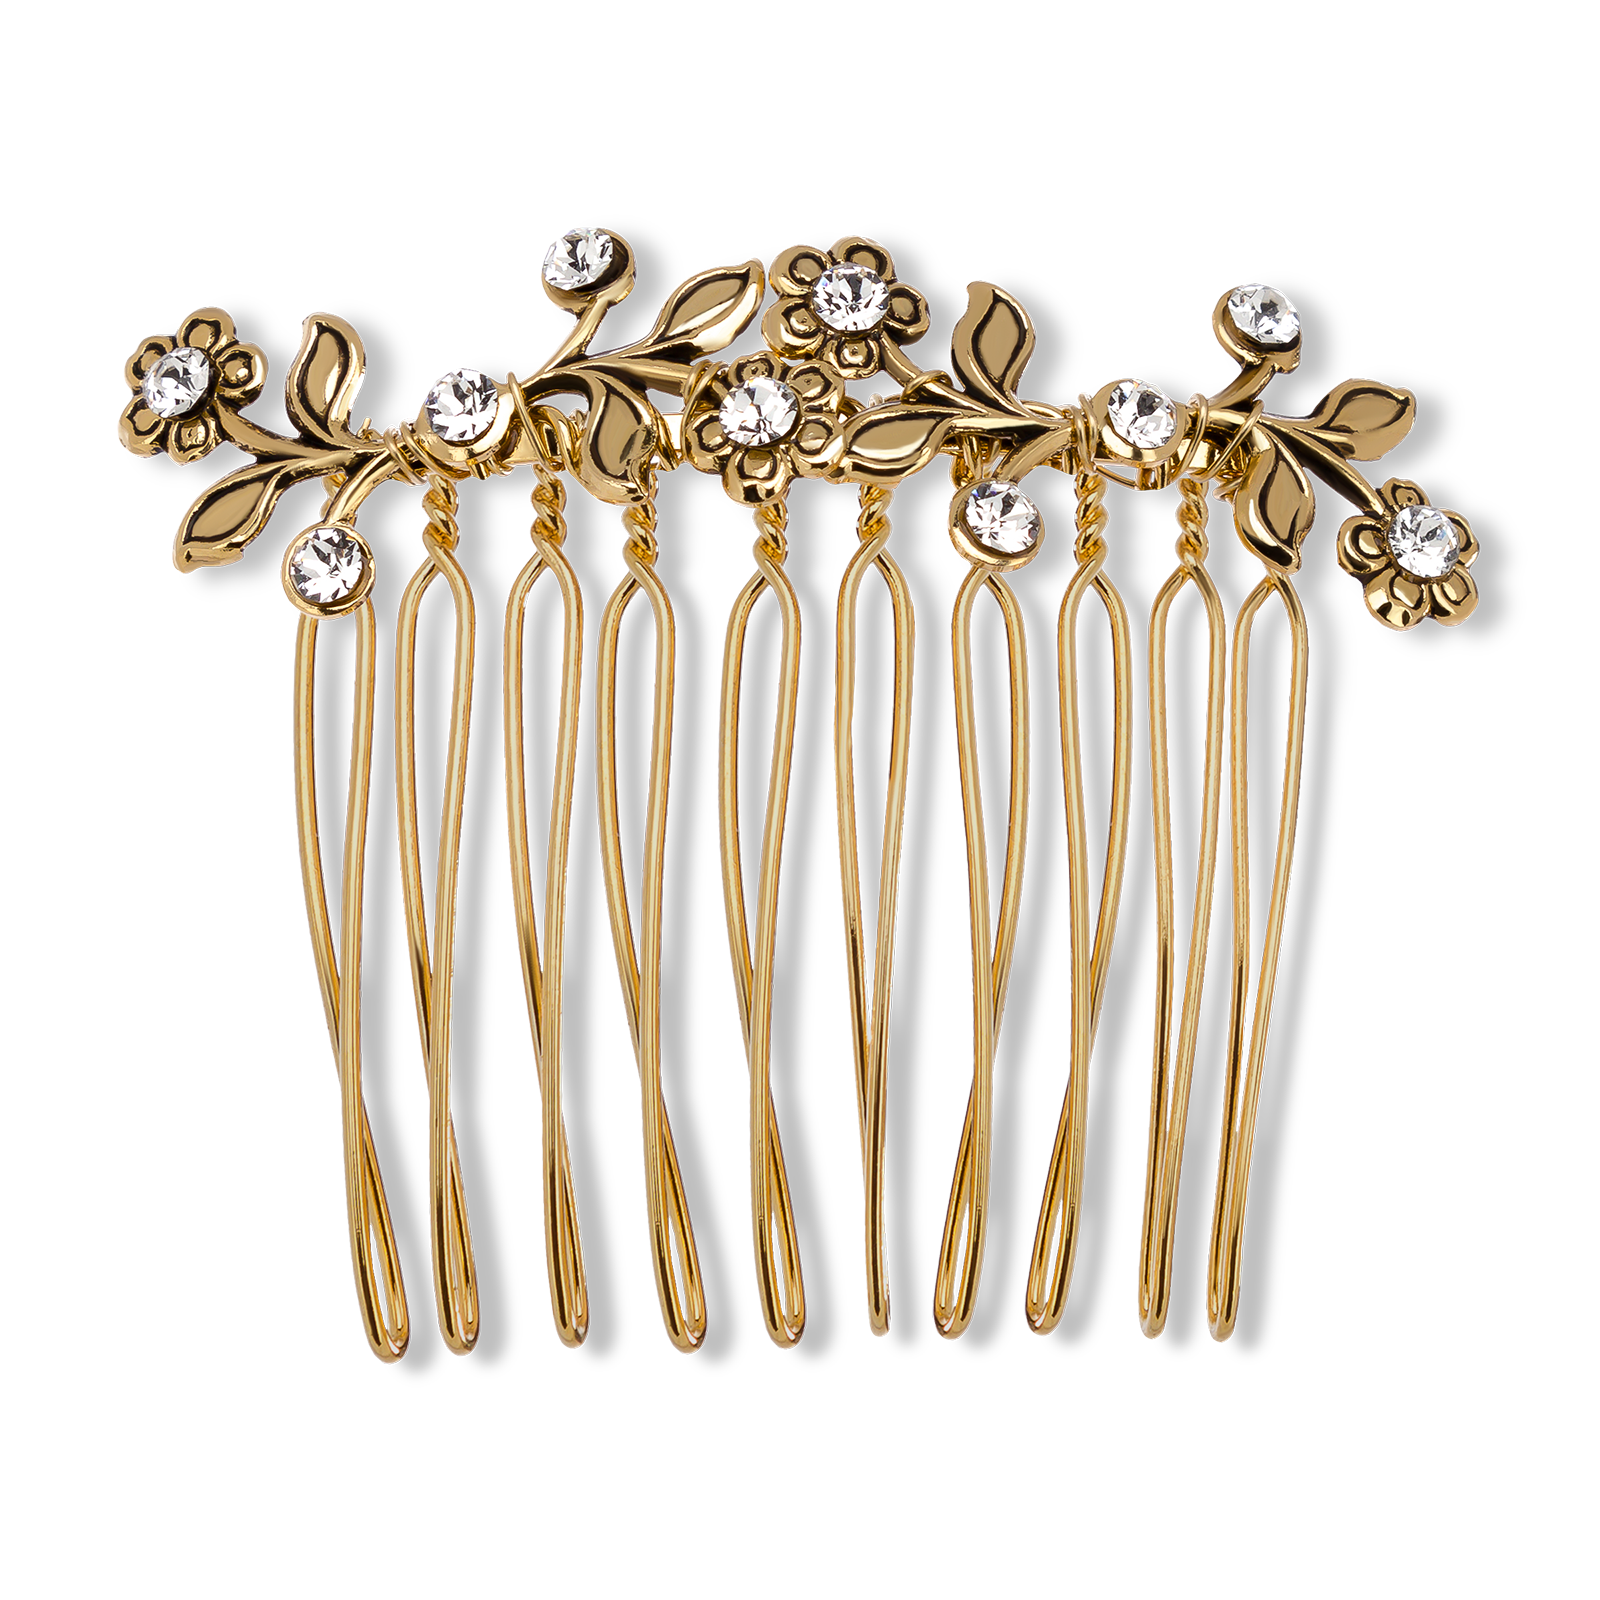 Decorative hair comb product image